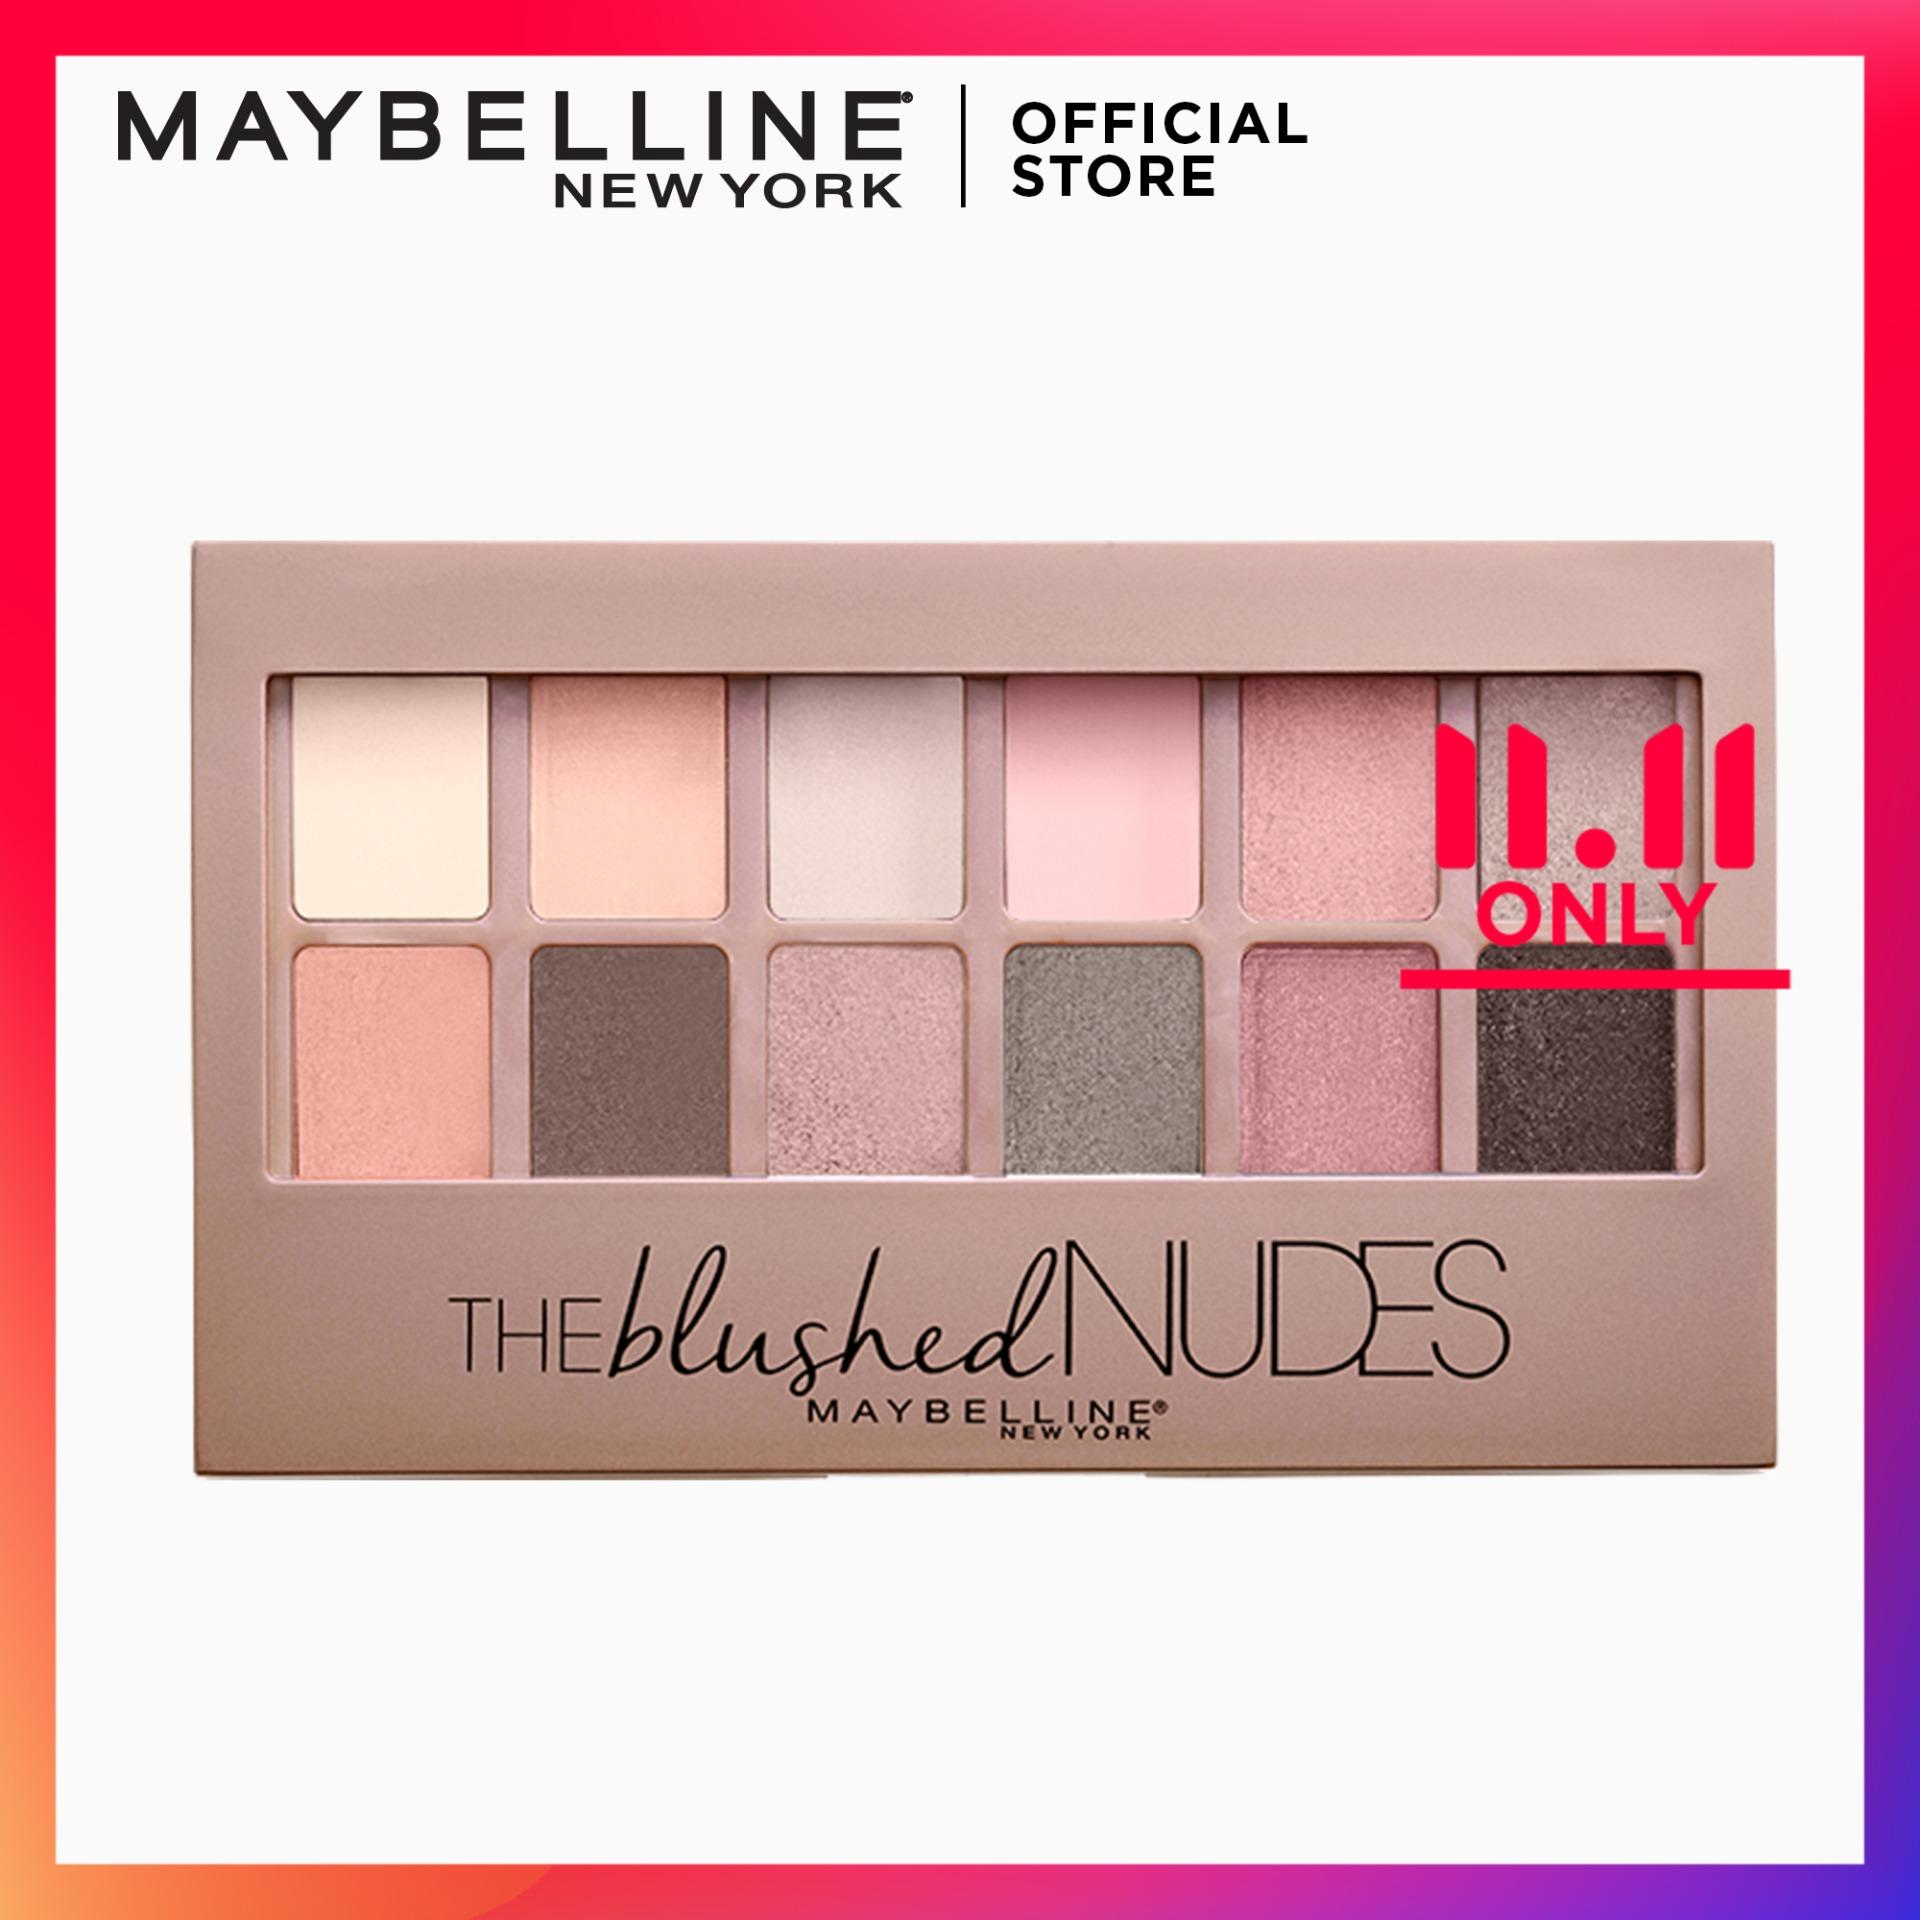 Eyeshadow Brands Pallete On Sale Prices Set Reviews Sixteen Eye Magazine Shadow 16 Brand Maybelline The Blushed Nudes Palette